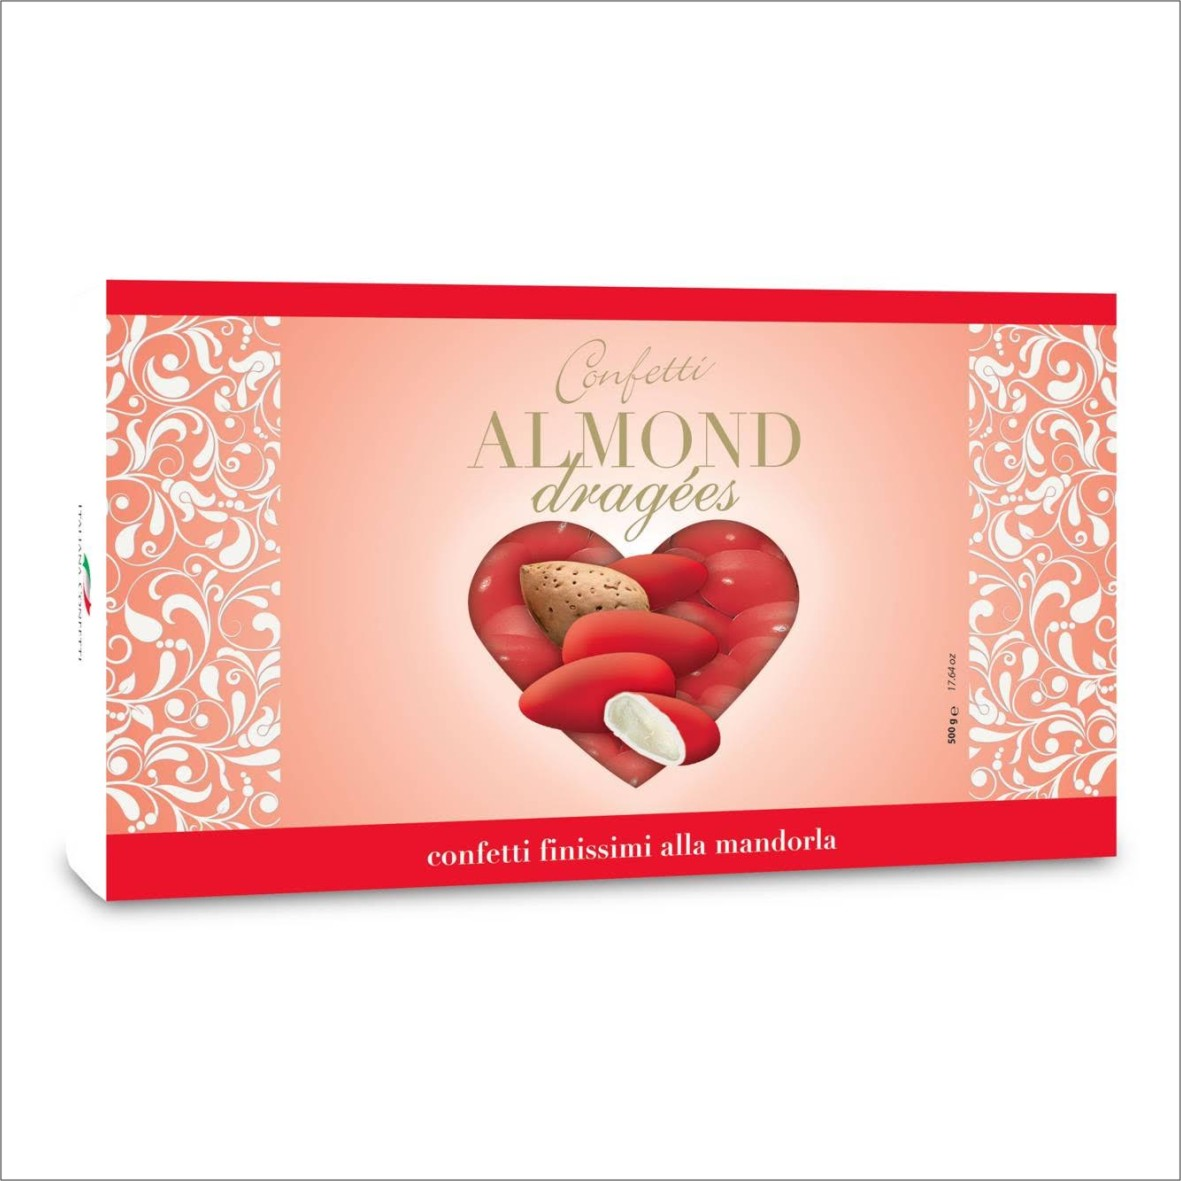 ALMOND ROSSO